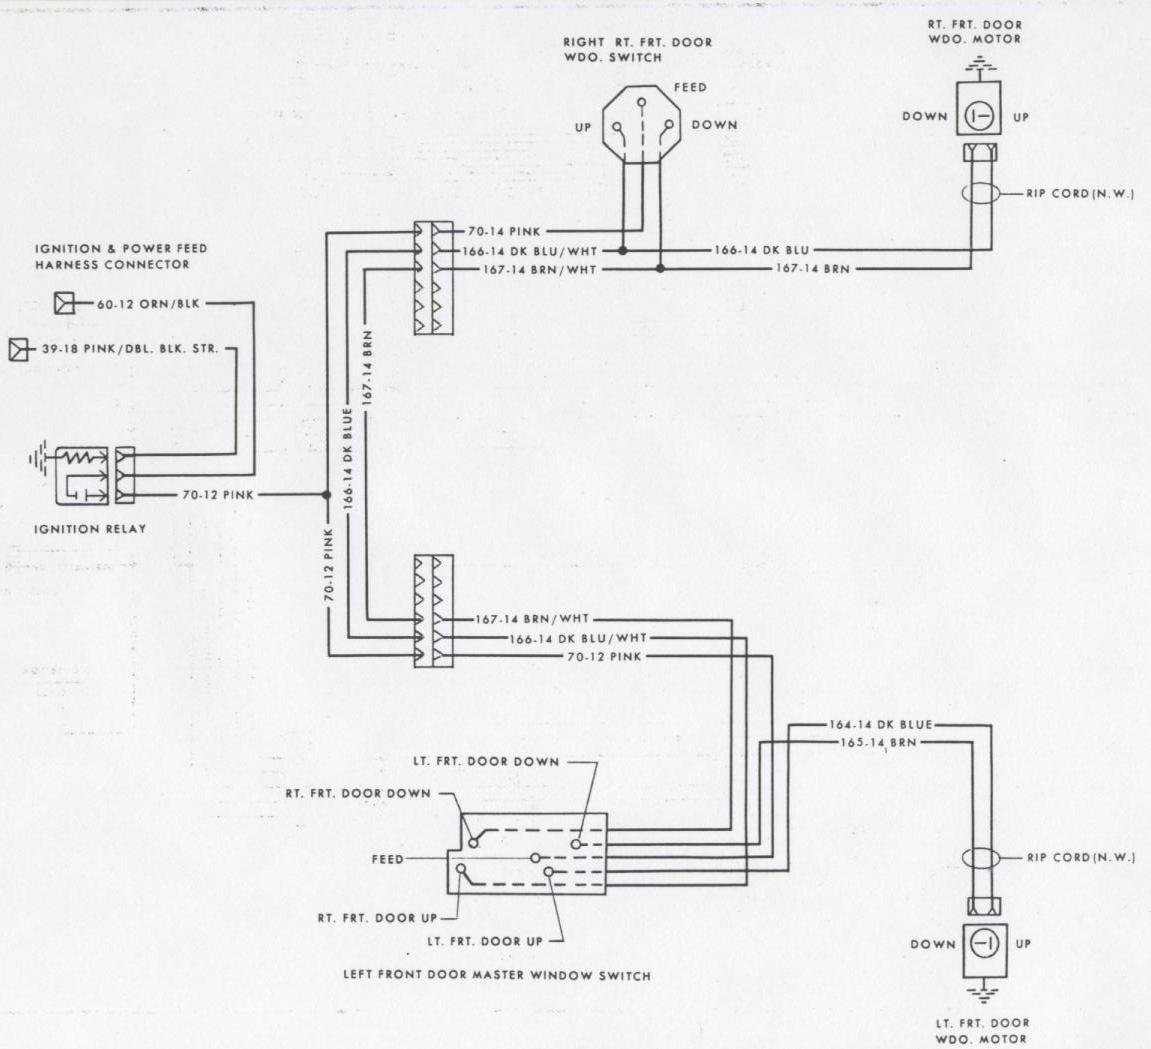 wiper motor wiring diagram together with 1967 el camino dash wiring